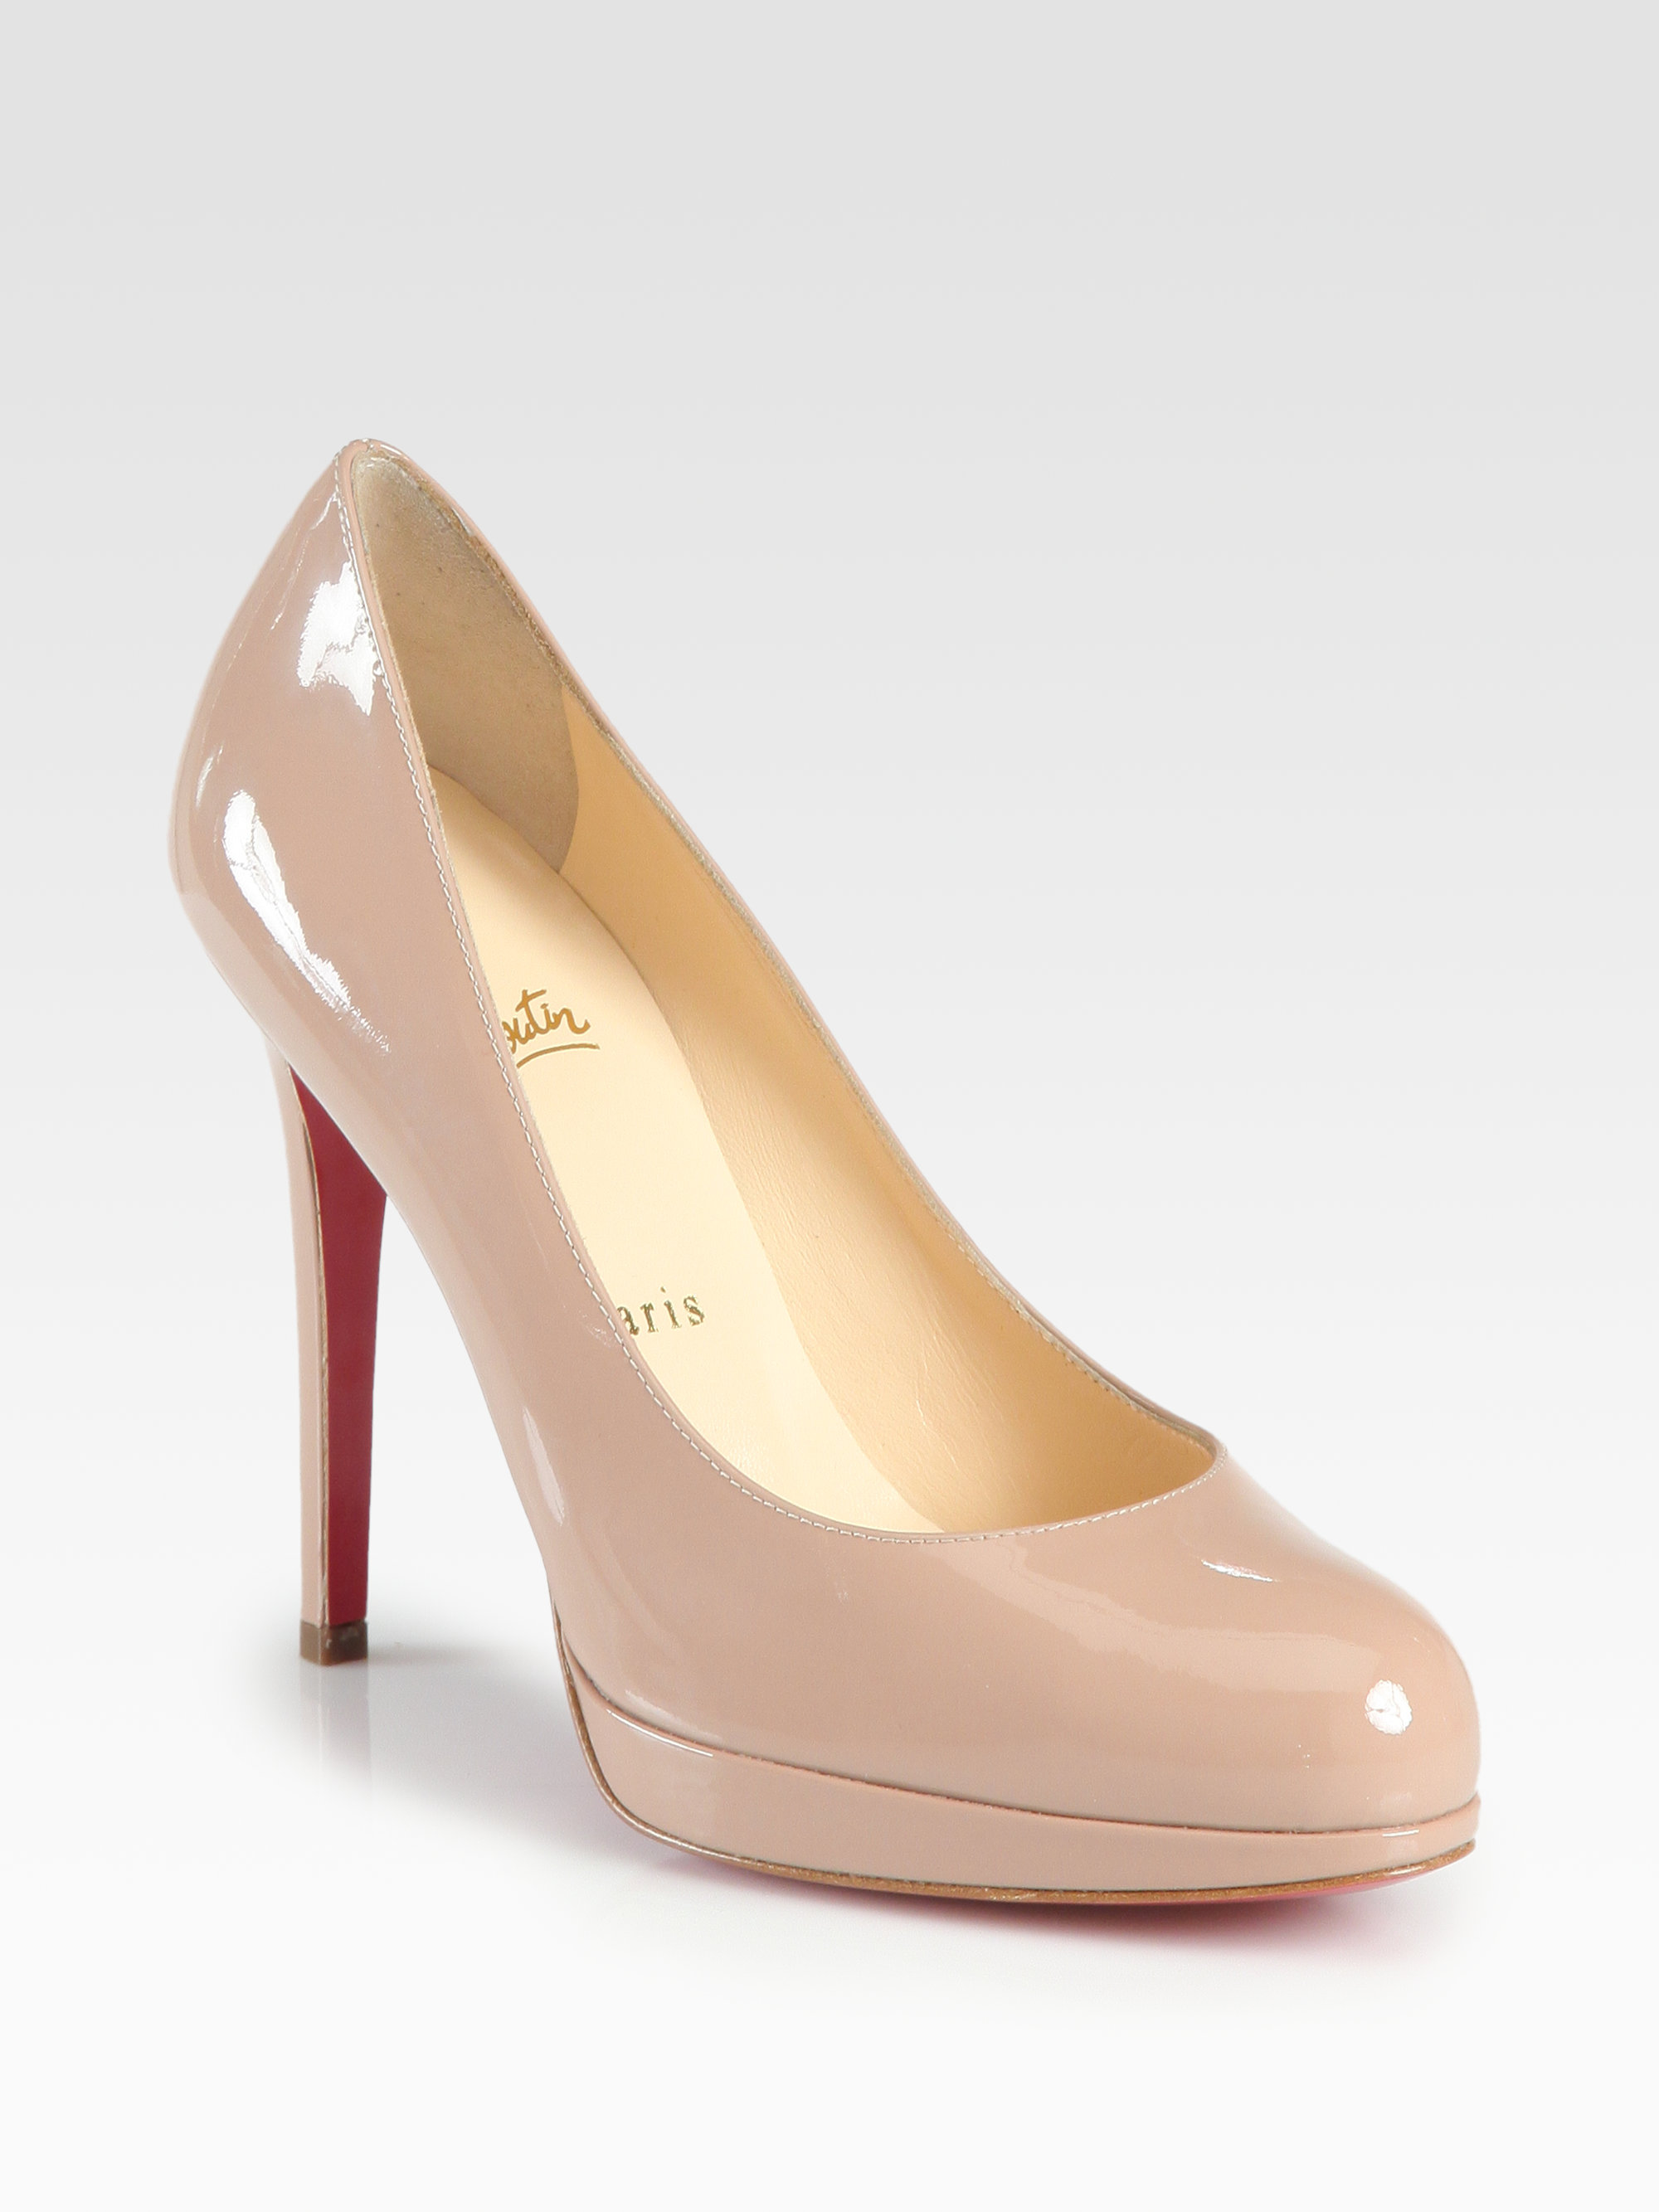 louboutin shoe price - christian-louboutin-nude-new-simple-120-patent-leather-pumps-product-1-5760786-831304582.jpeg